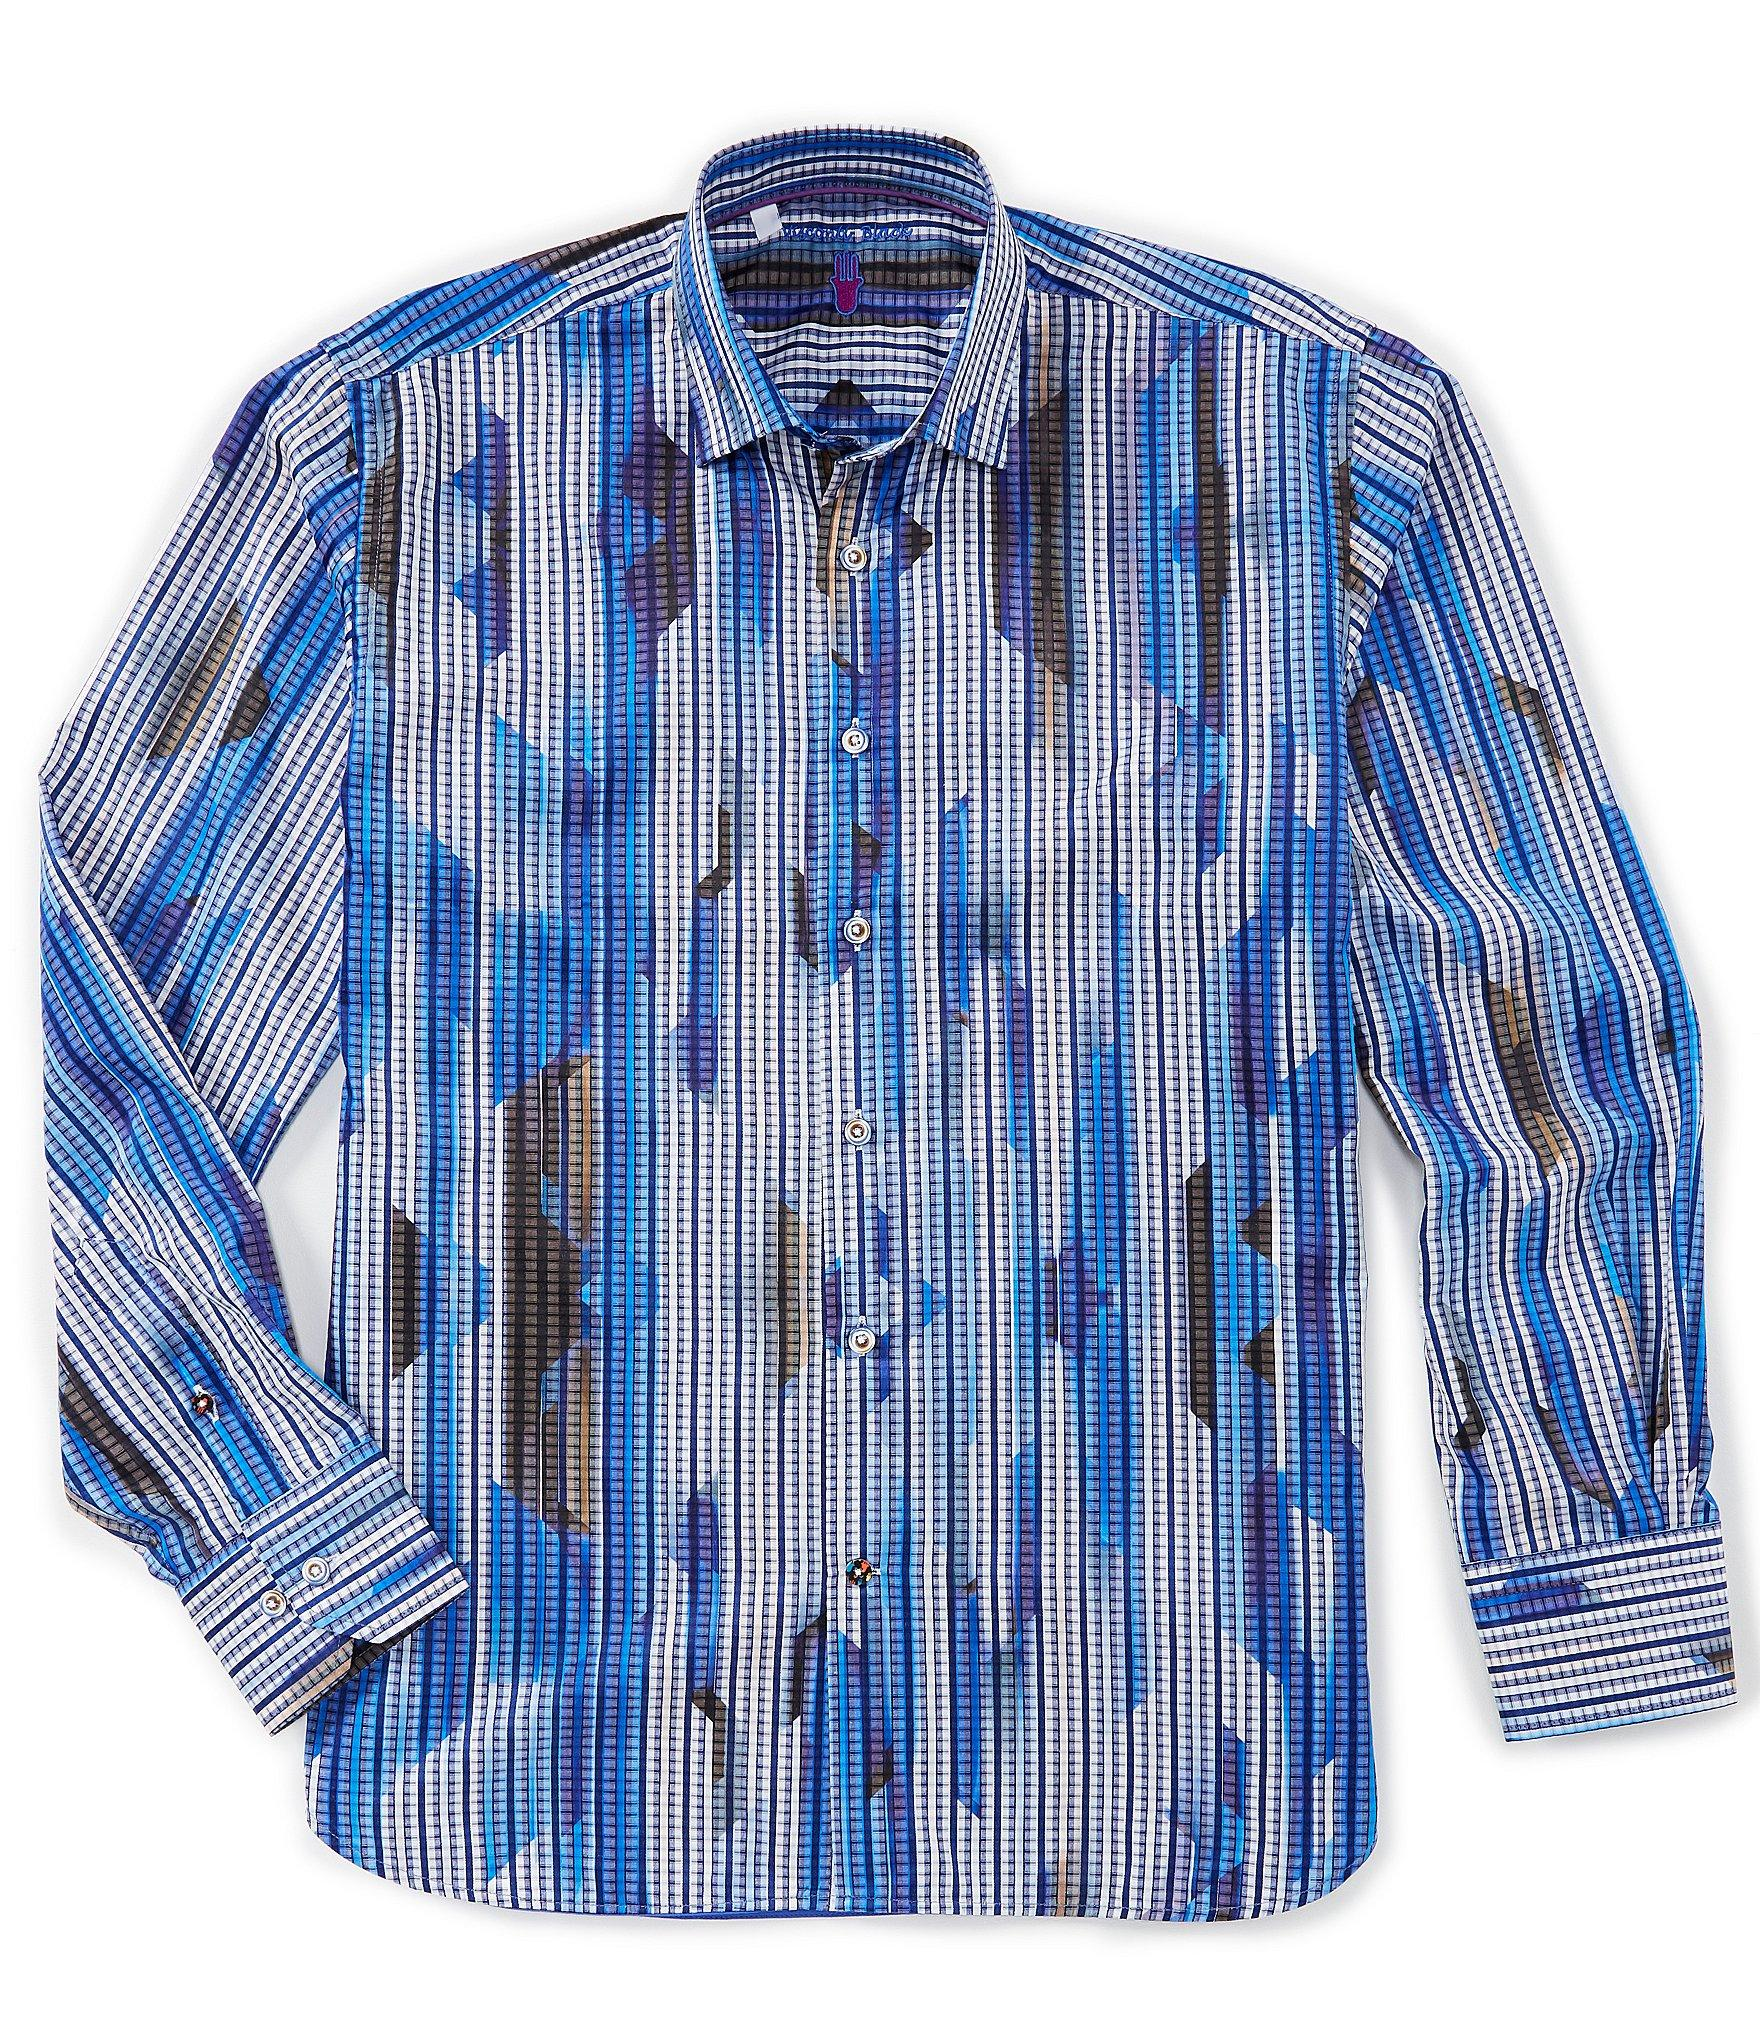 59817f77eea2f Visconti - Blue Jagged Stripe Long-sleeve Woven Shirt for Men - Lyst. View  fullscreen